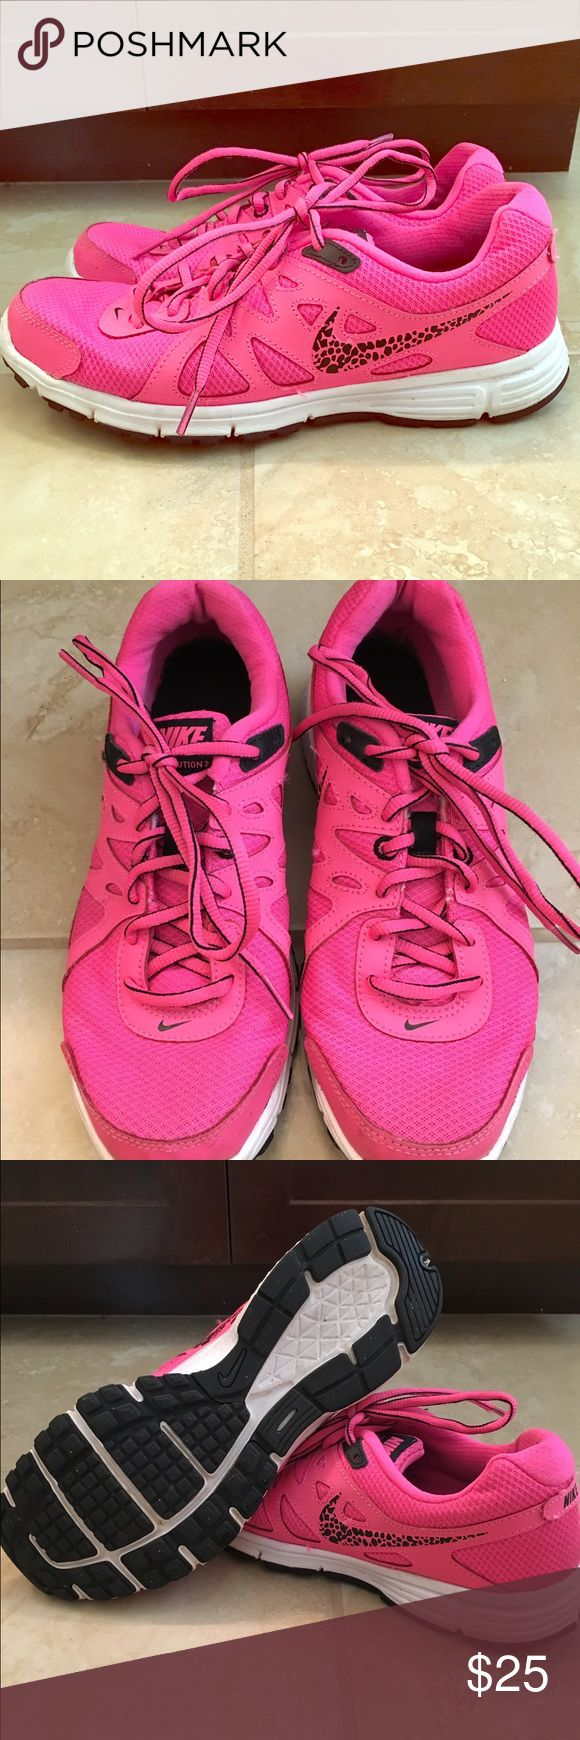 """Bright pink Nike running shoe Pink Nike revolution running shoe size 9 with """"leopard"""" like swish. Super comfy cute and gently worn. Excellent condition!  Nike Shoes"""